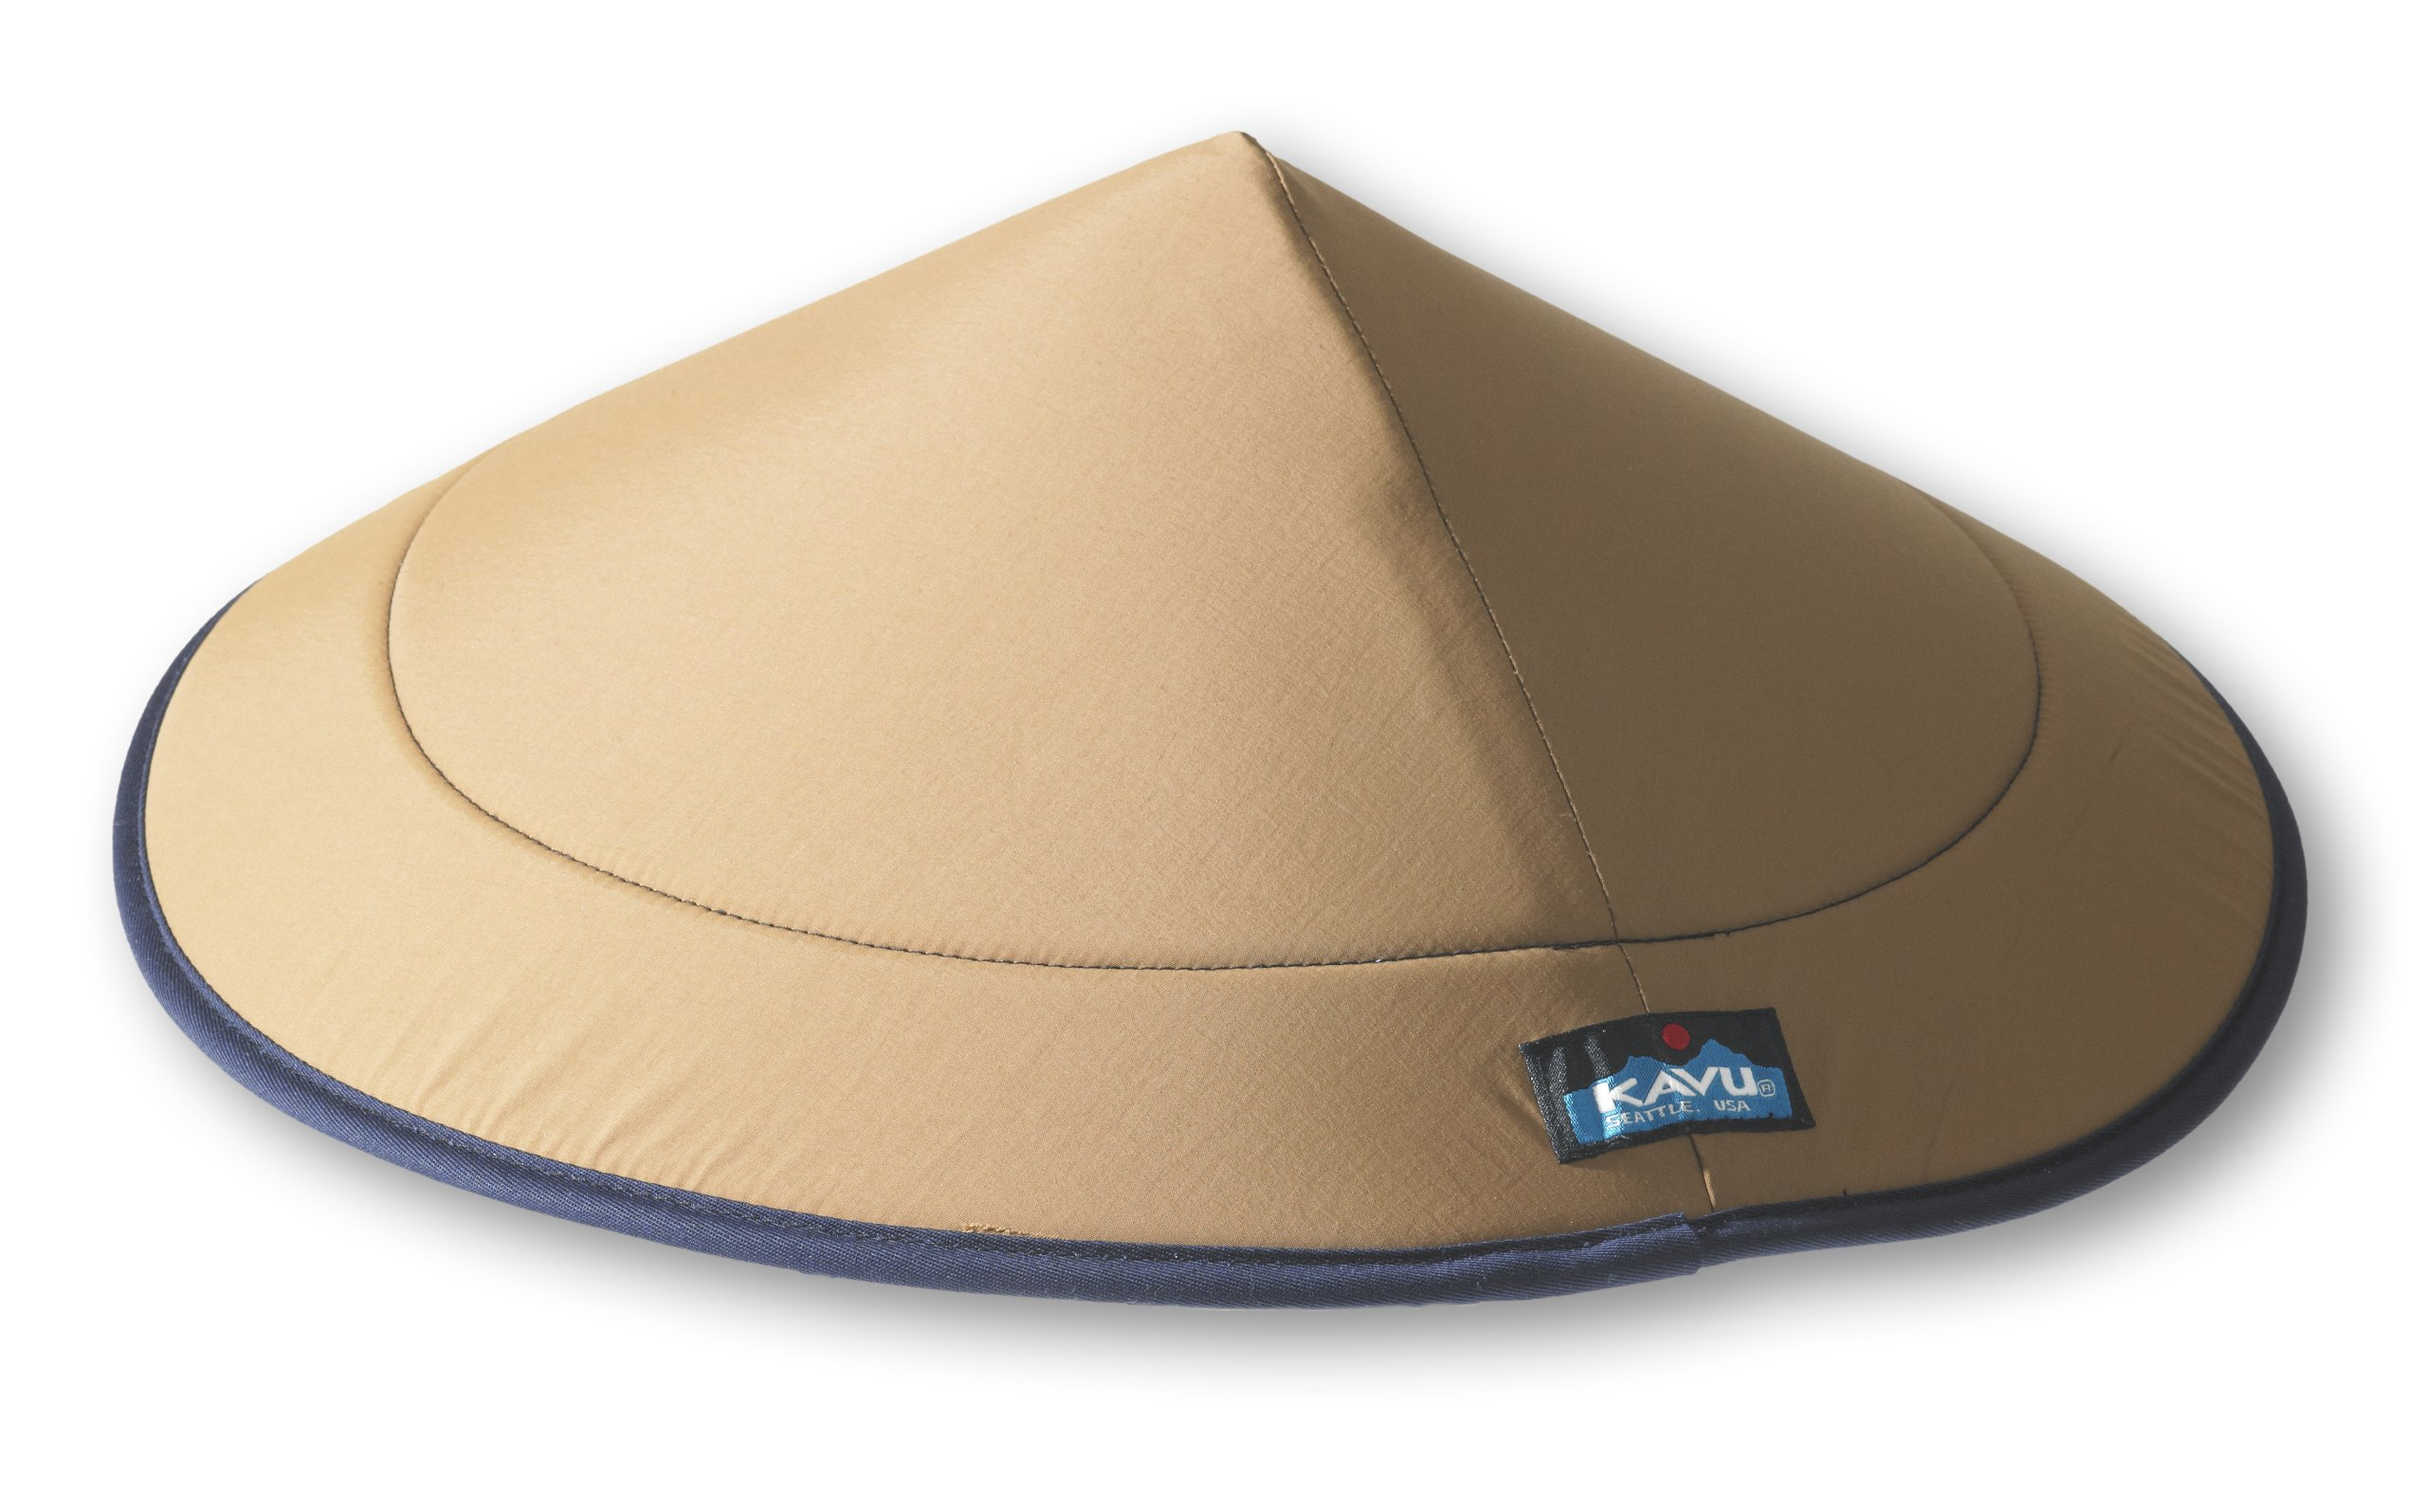 KAVU Chillba, Pyrite, One Size by KAVU